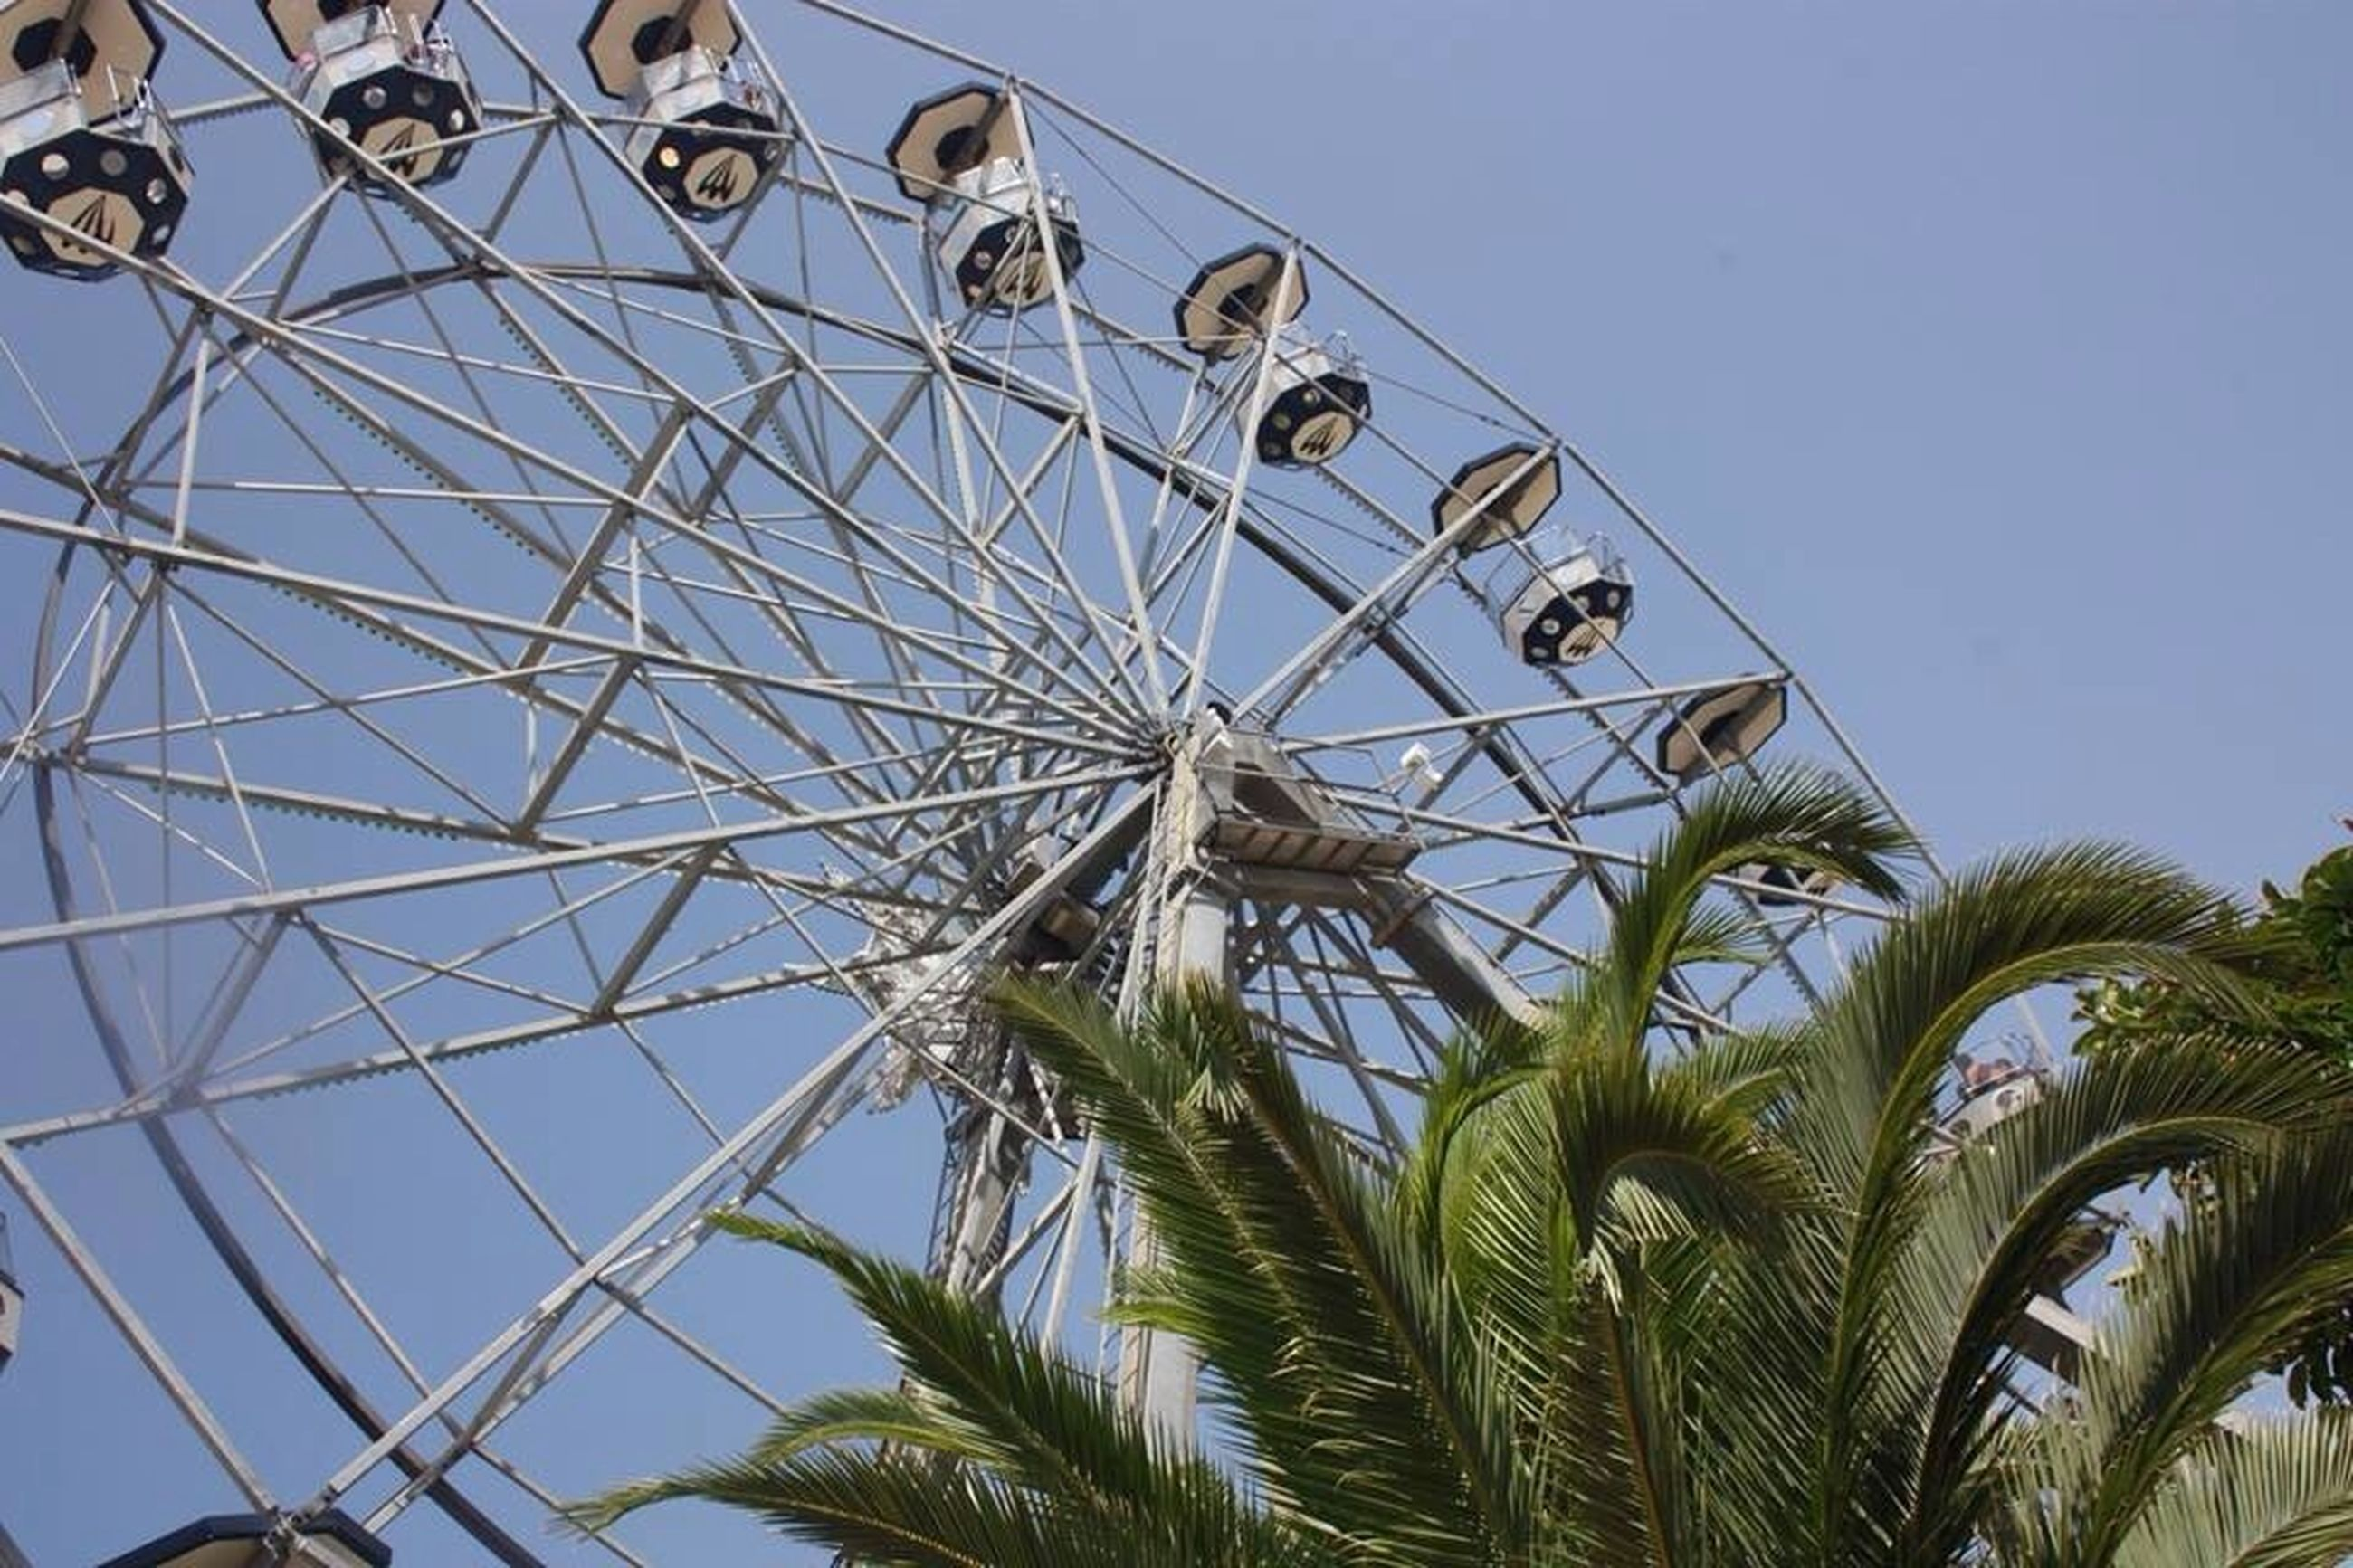 low angle view, clear sky, amusement park, ferris wheel, amusement park ride, arts culture and entertainment, palm tree, tree, sky, blue, day, built structure, outdoors, copy space, circle, growth, no people, architecture, metal, part of